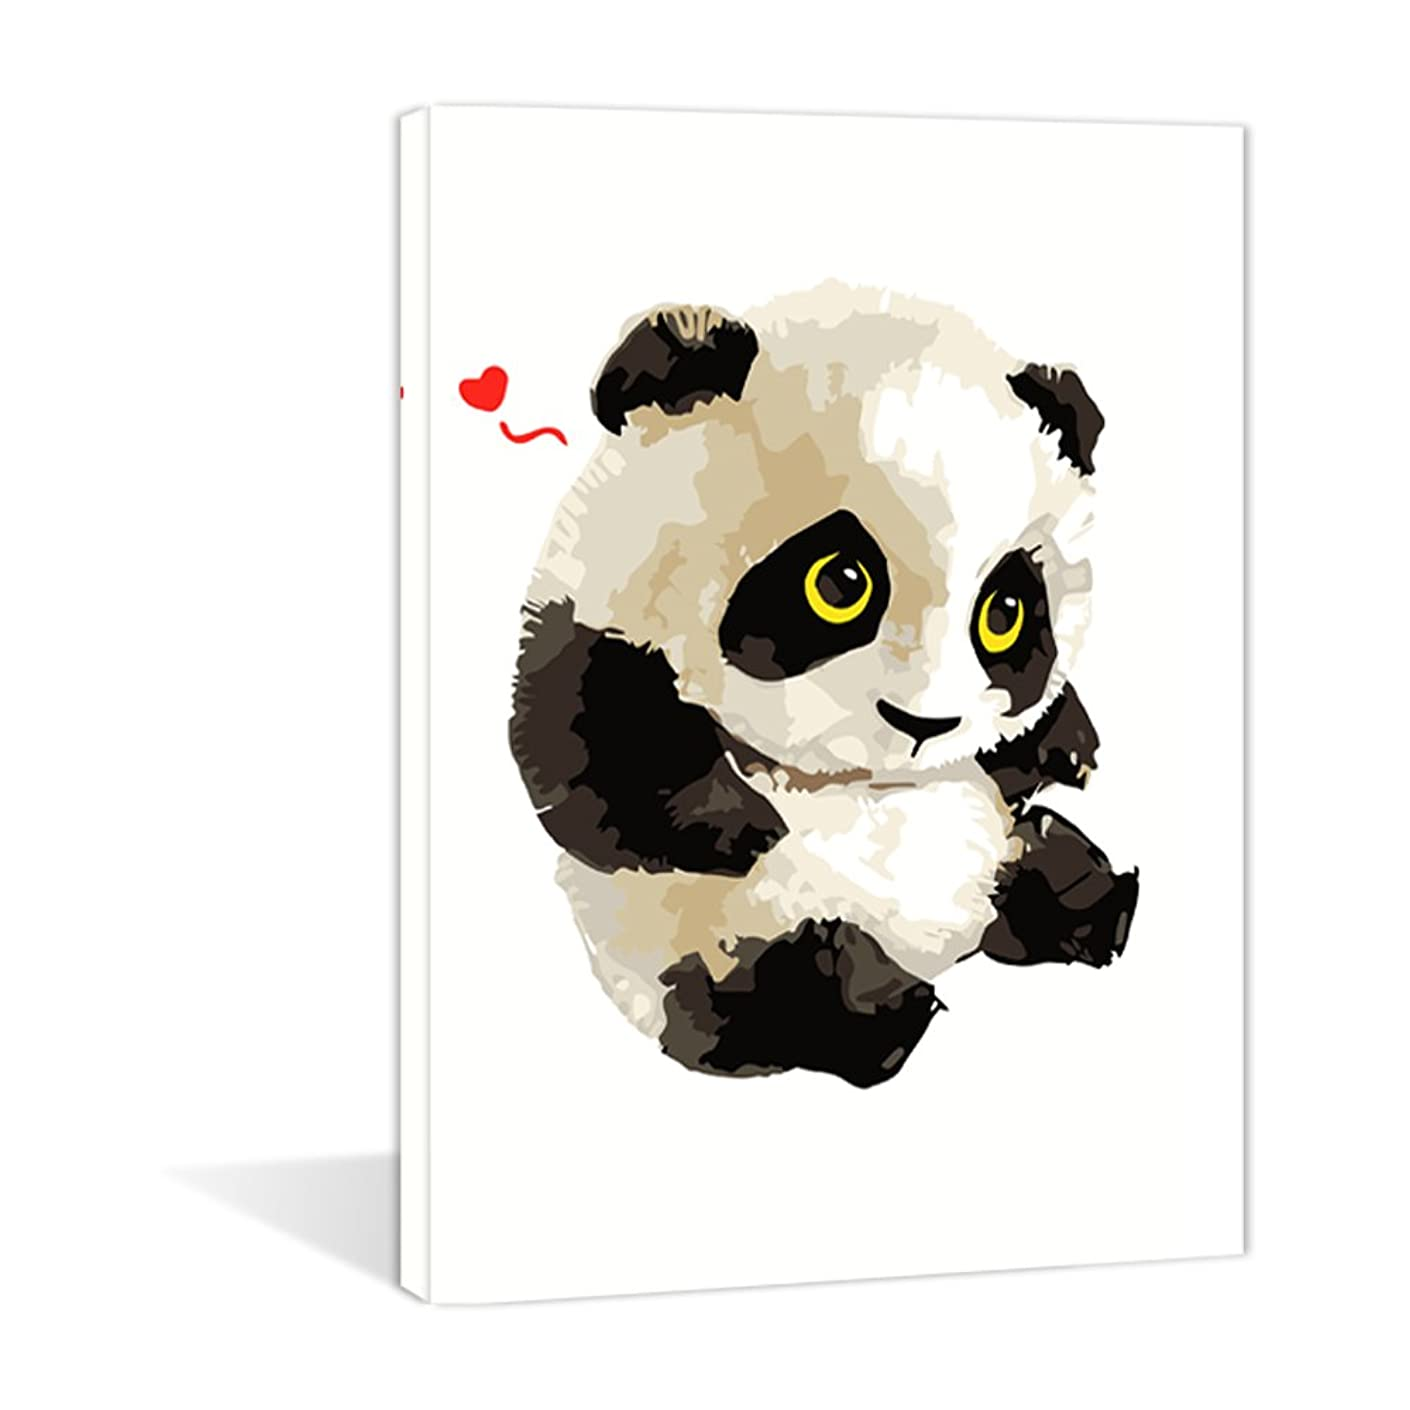 Paint by Numbers 16 x 20 inch Canvas Art Kits DIY Oil Painting for Kids/Students/Adults Beginner Wall Decorative Painting for Children's Day, Cute Panda